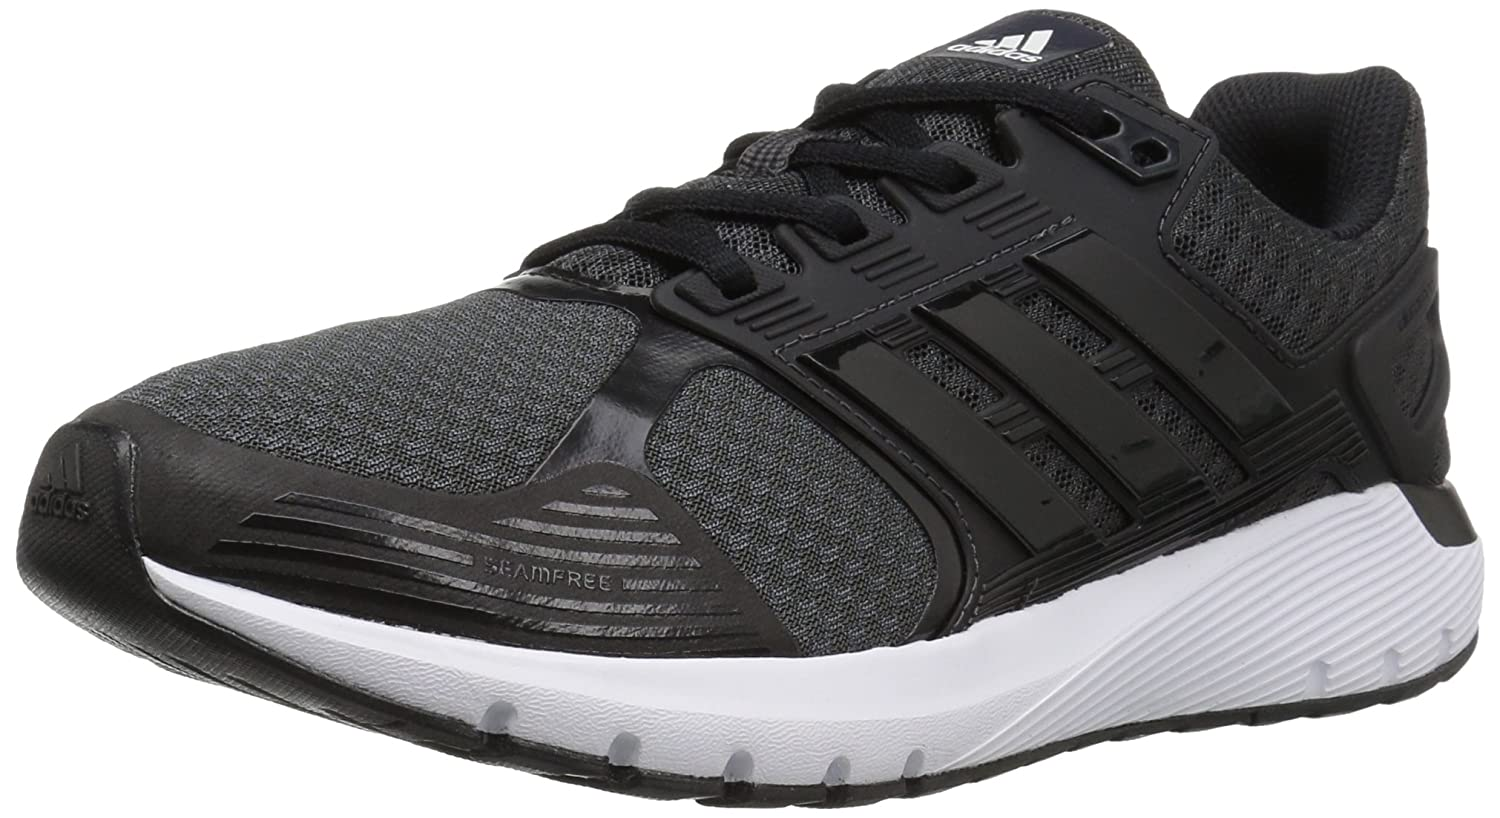 adidas Women's Duramo 8 W Running Shoe, Utility Black, 9 M US